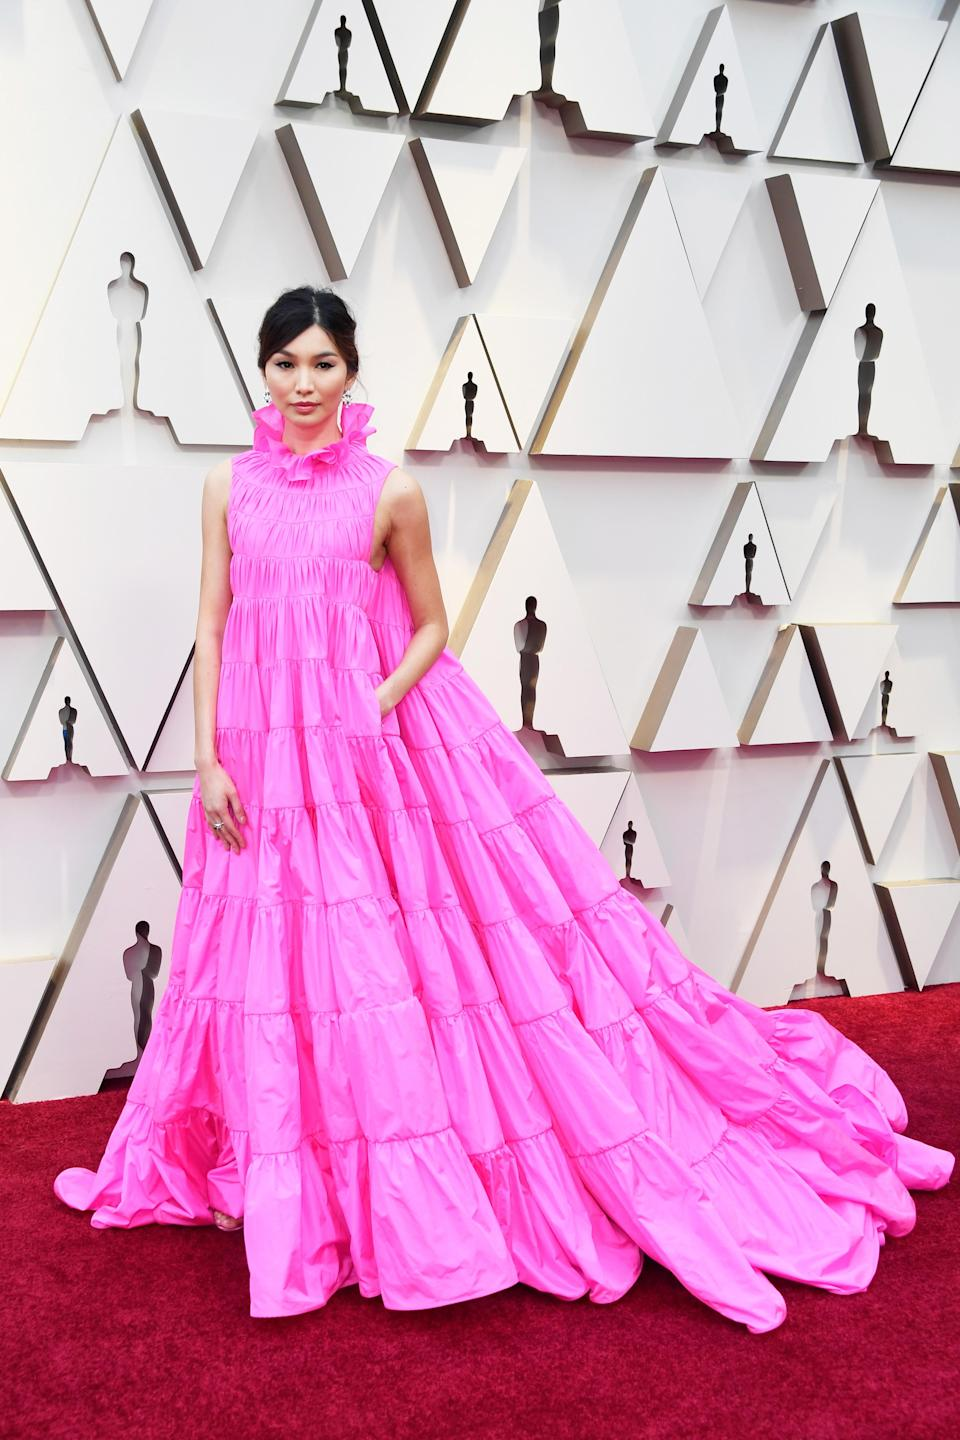 """<h2>Gemma Chan, 2019</h2><br>Hot pink came out running at the 91st Annual Academy Awards. But if you ask us, Gemma Chan won the marathon in this neon, tiered Versace dress.<br><br><em>Gemma Chan in Versace. </em><span class=""""copyright"""">Photo by Frazer Harrison/Getty Images.</span>"""